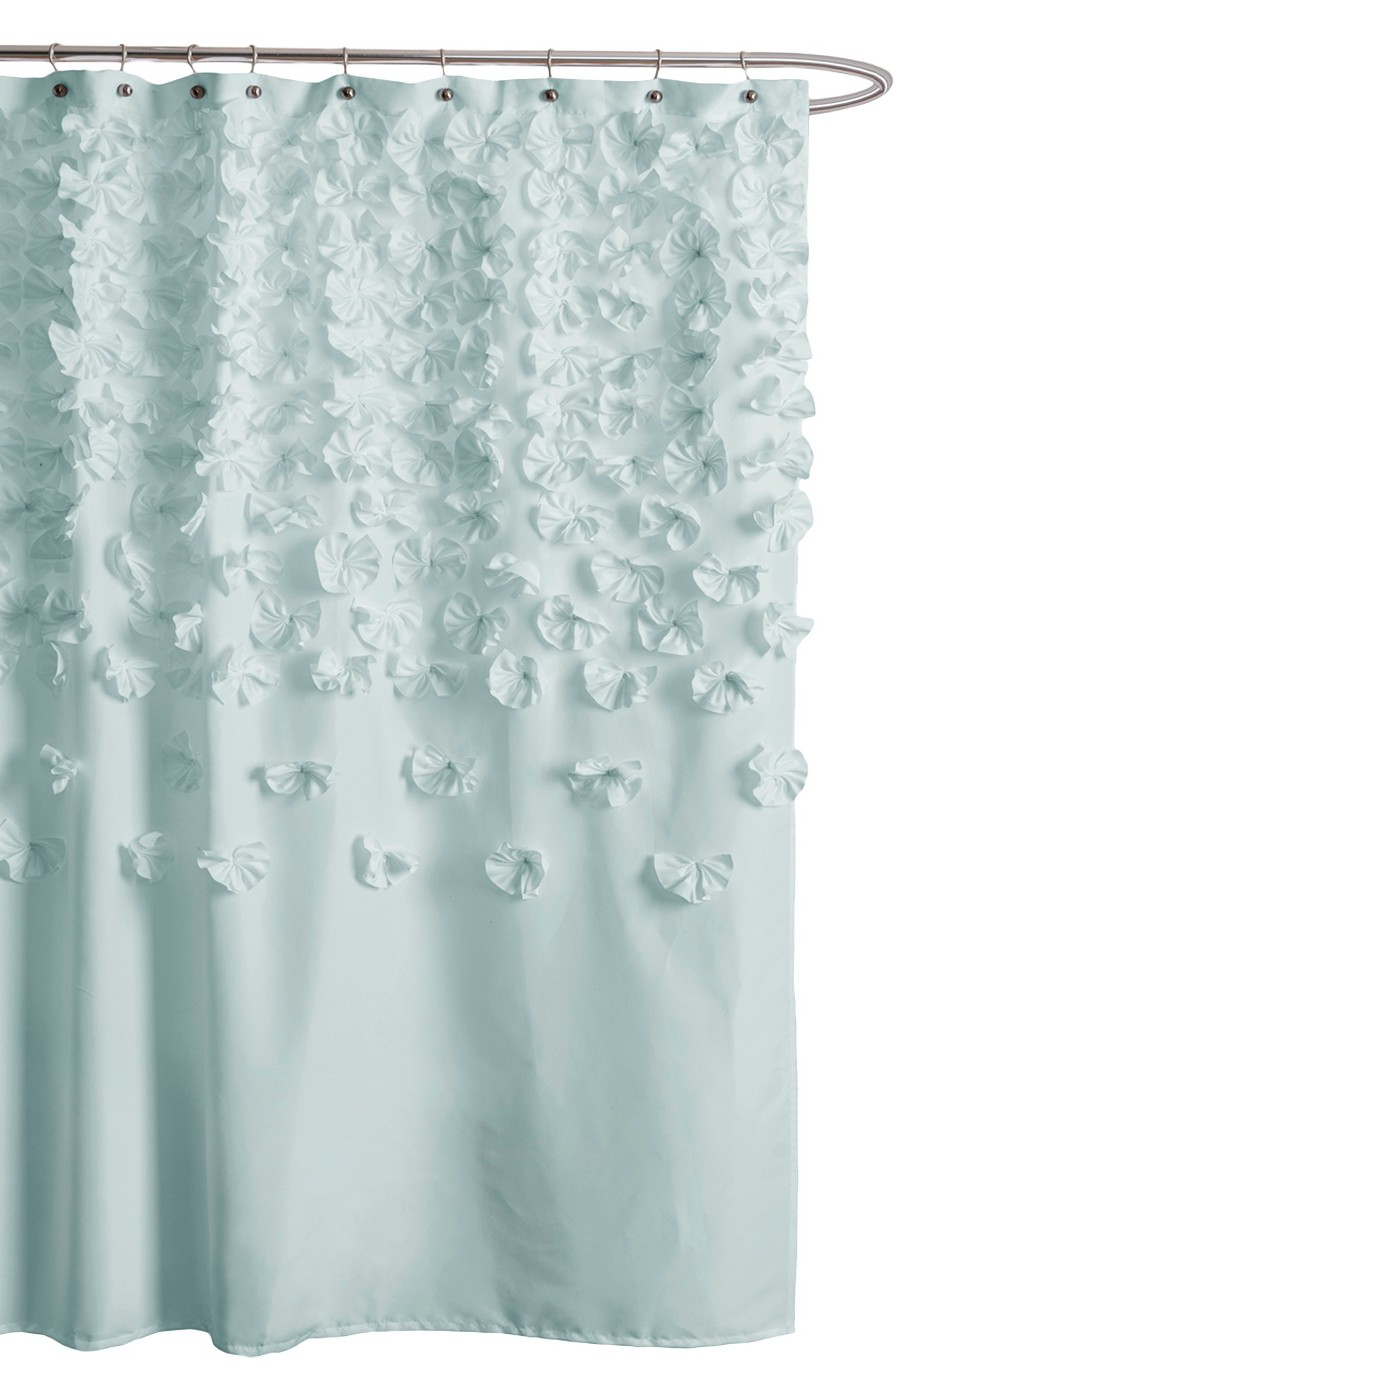 Lush Decor Lucia Scattered Flower Texture Shower Curtain - image 1 of 1